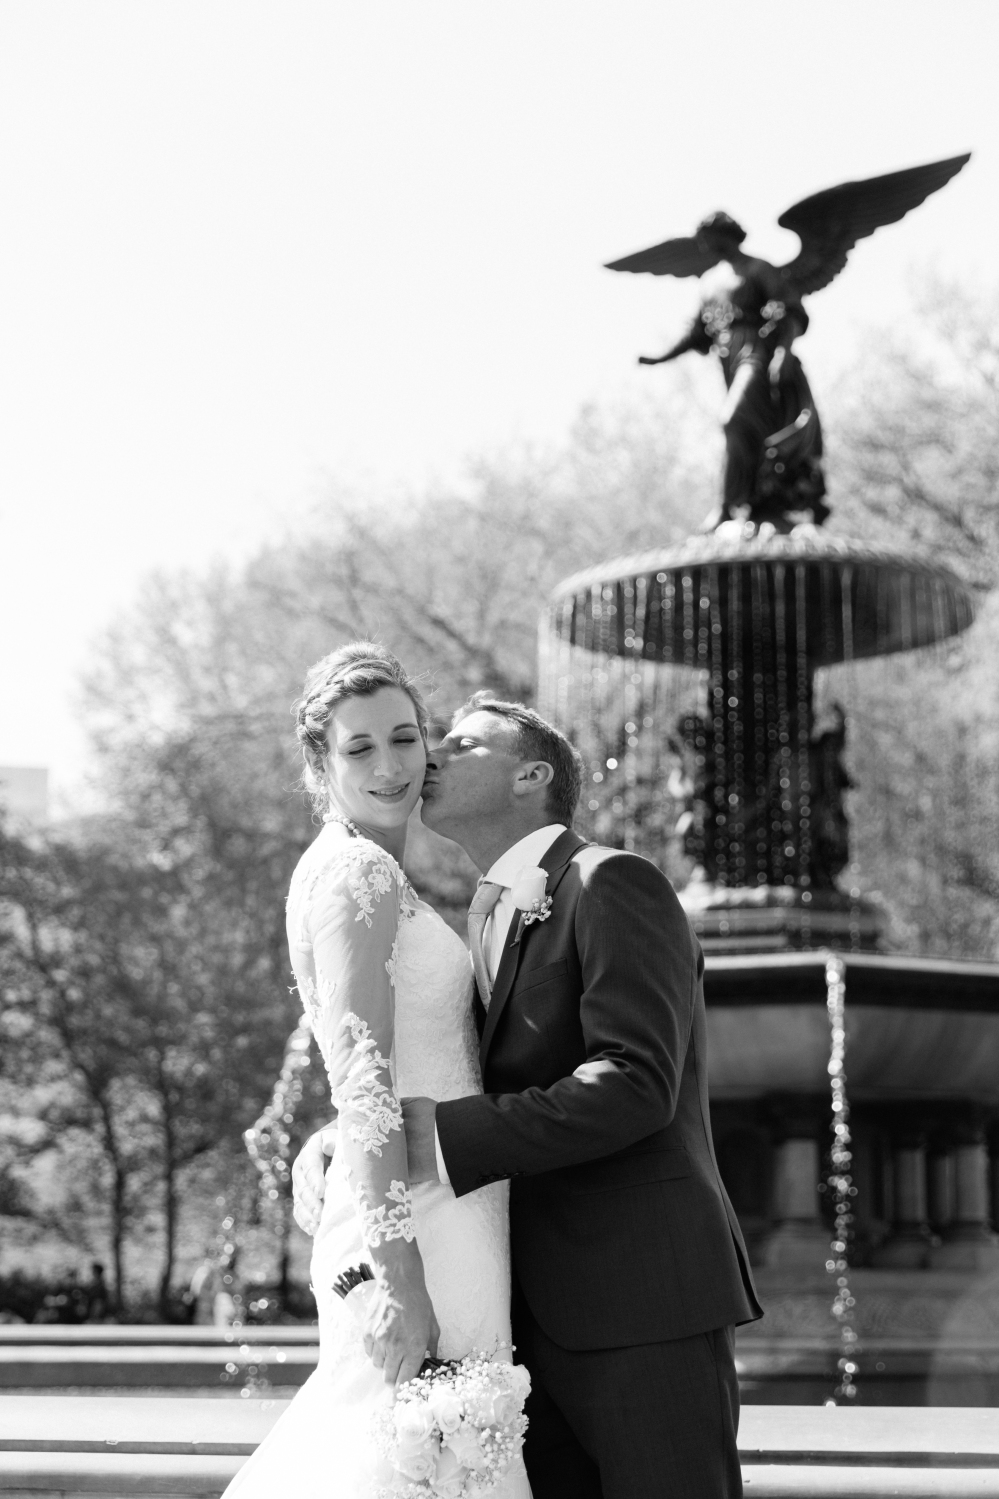 Wagner-cove-central-park-wedding-SS-256